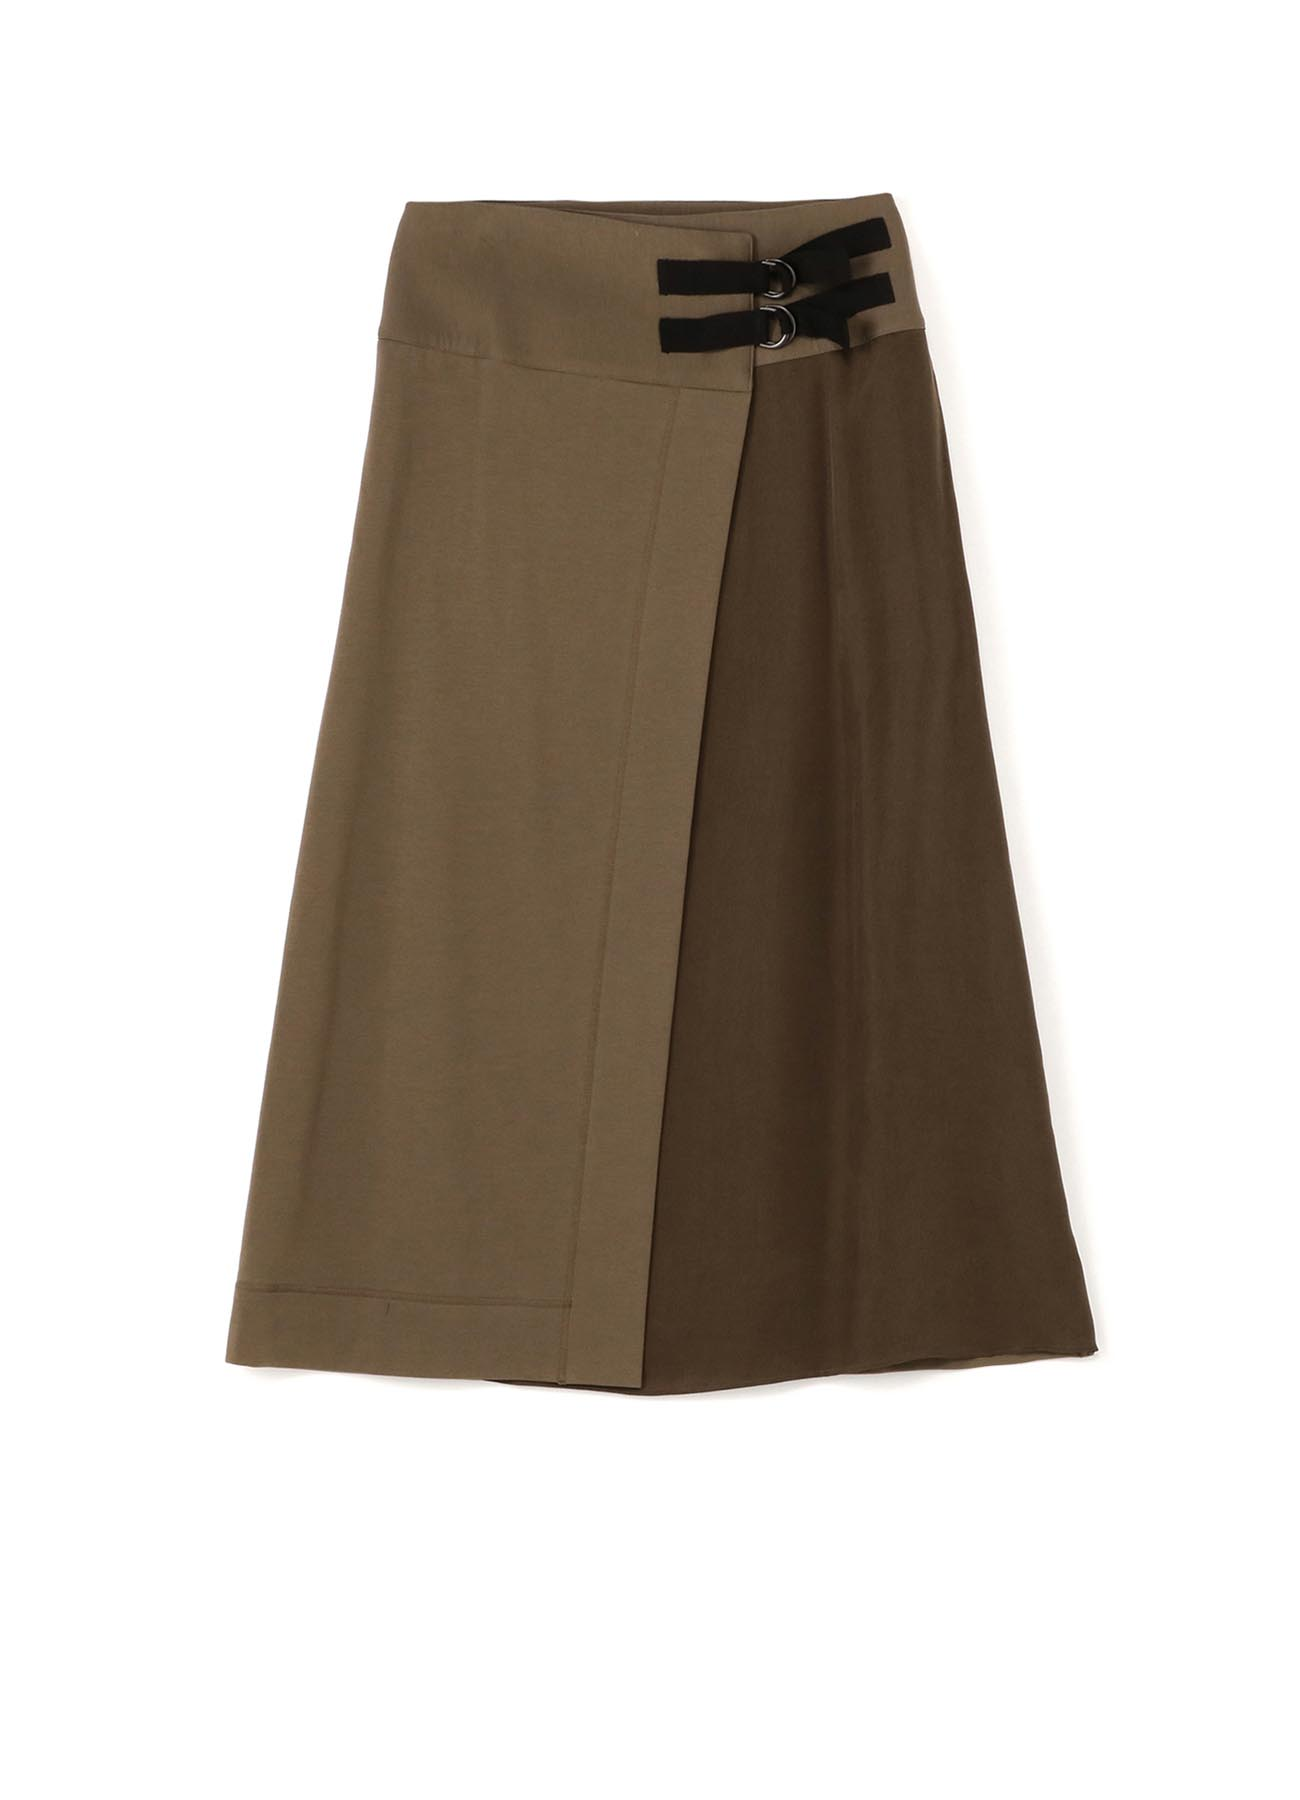 RISMATbyY's COTTON SUVIN GIZA FLEECE W BELT WRAP SKIRT